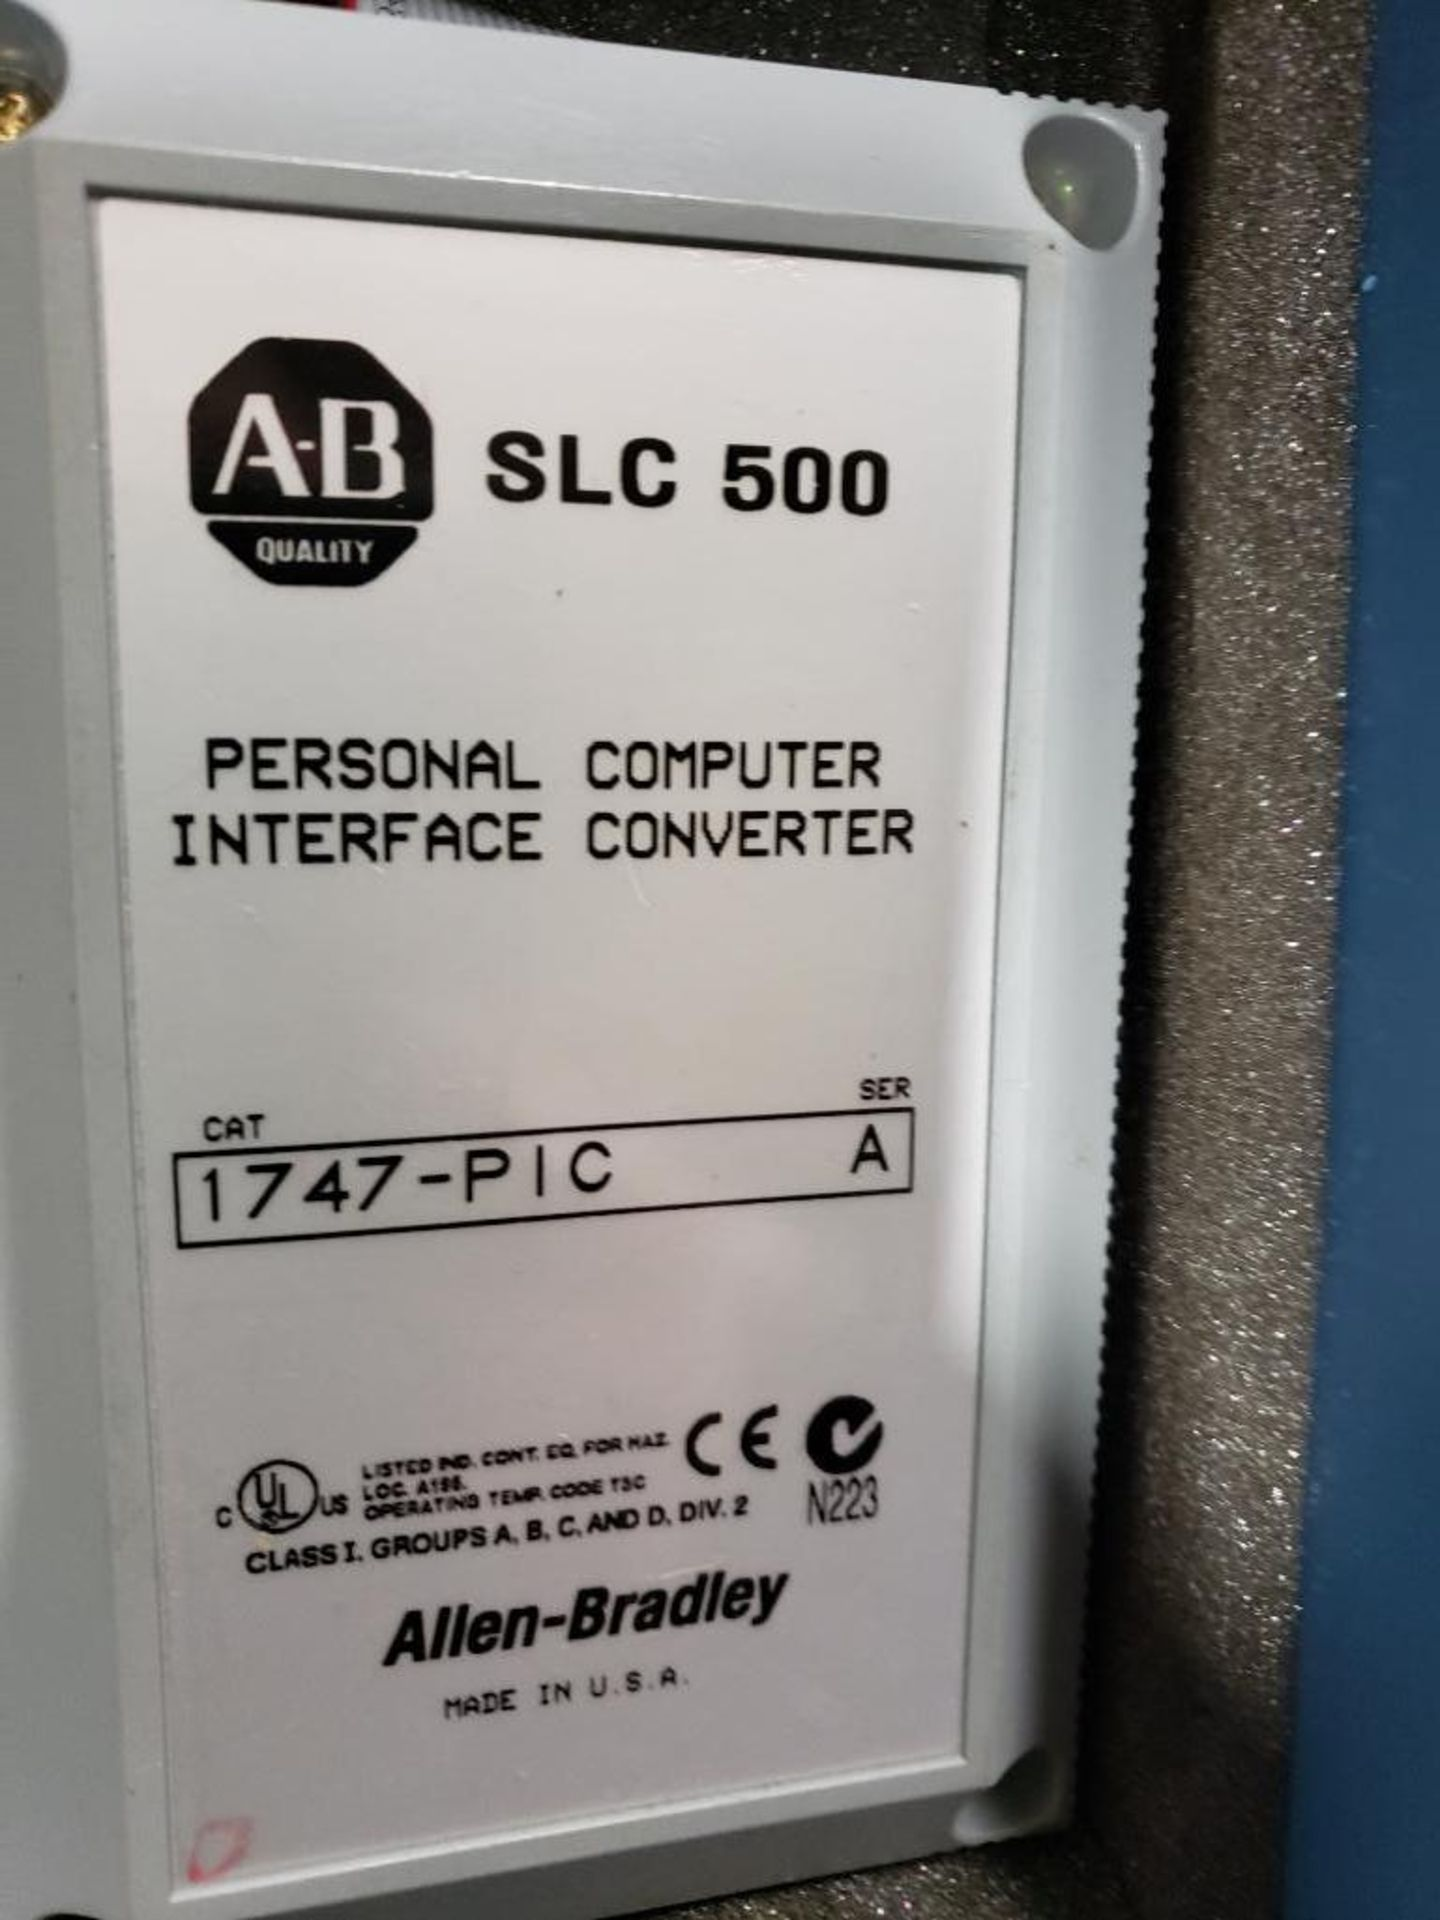 Allen Bradley SLC-500. Personal Computer Interface Converter 1747-PIC. - Image 6 of 6